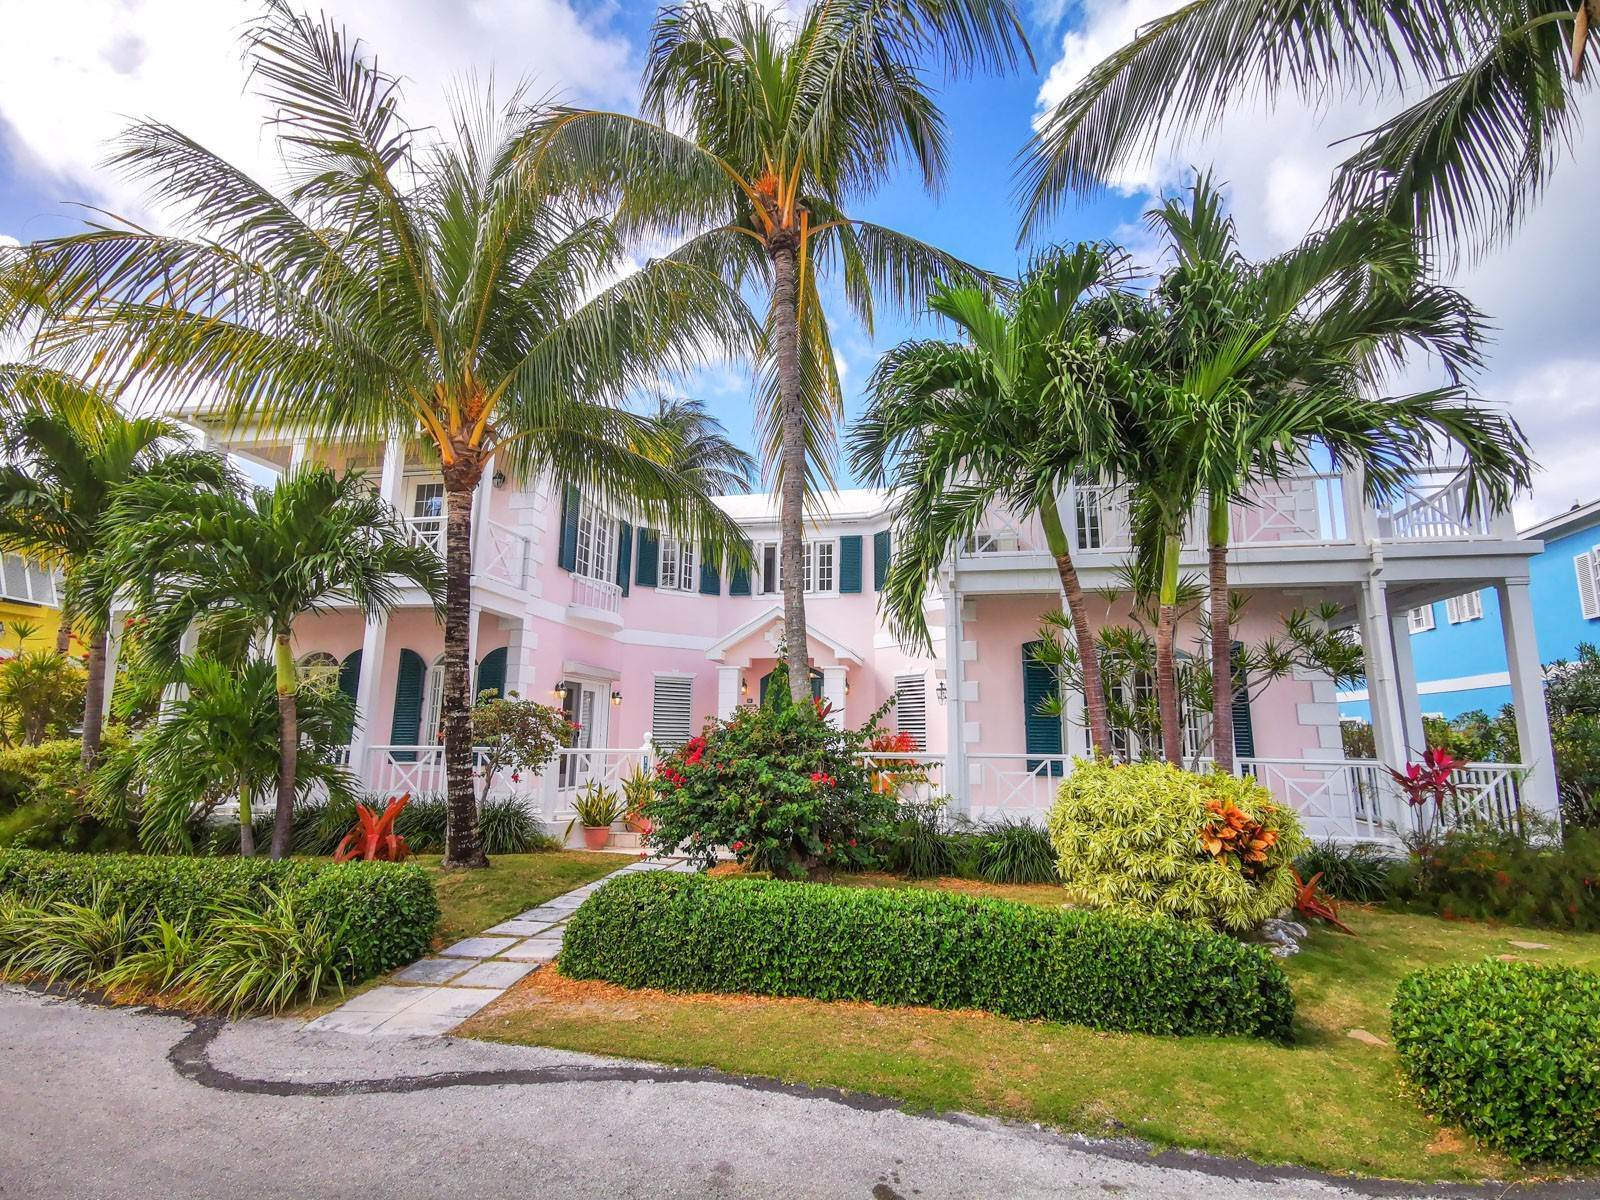 Single Family Homes for Sale at #53 Sandyport Residence - MLS 41822 Sandyport, Cable Beach, Nassau And Paradise Island Bahamas